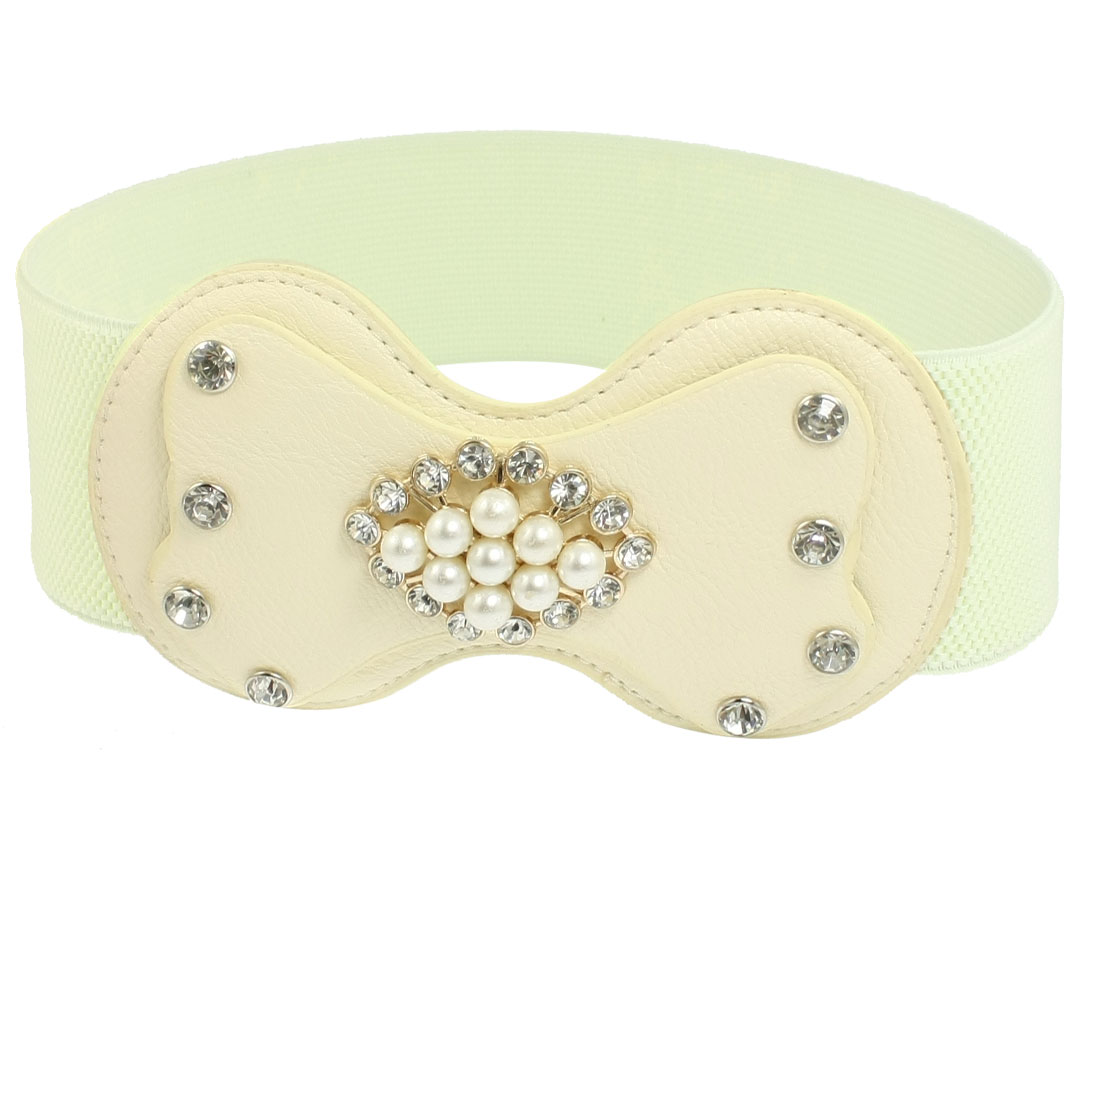 Woman Faux Leather Bowknot Buckle Rhinestones Inlaid Stretchy Waist Belt Beige